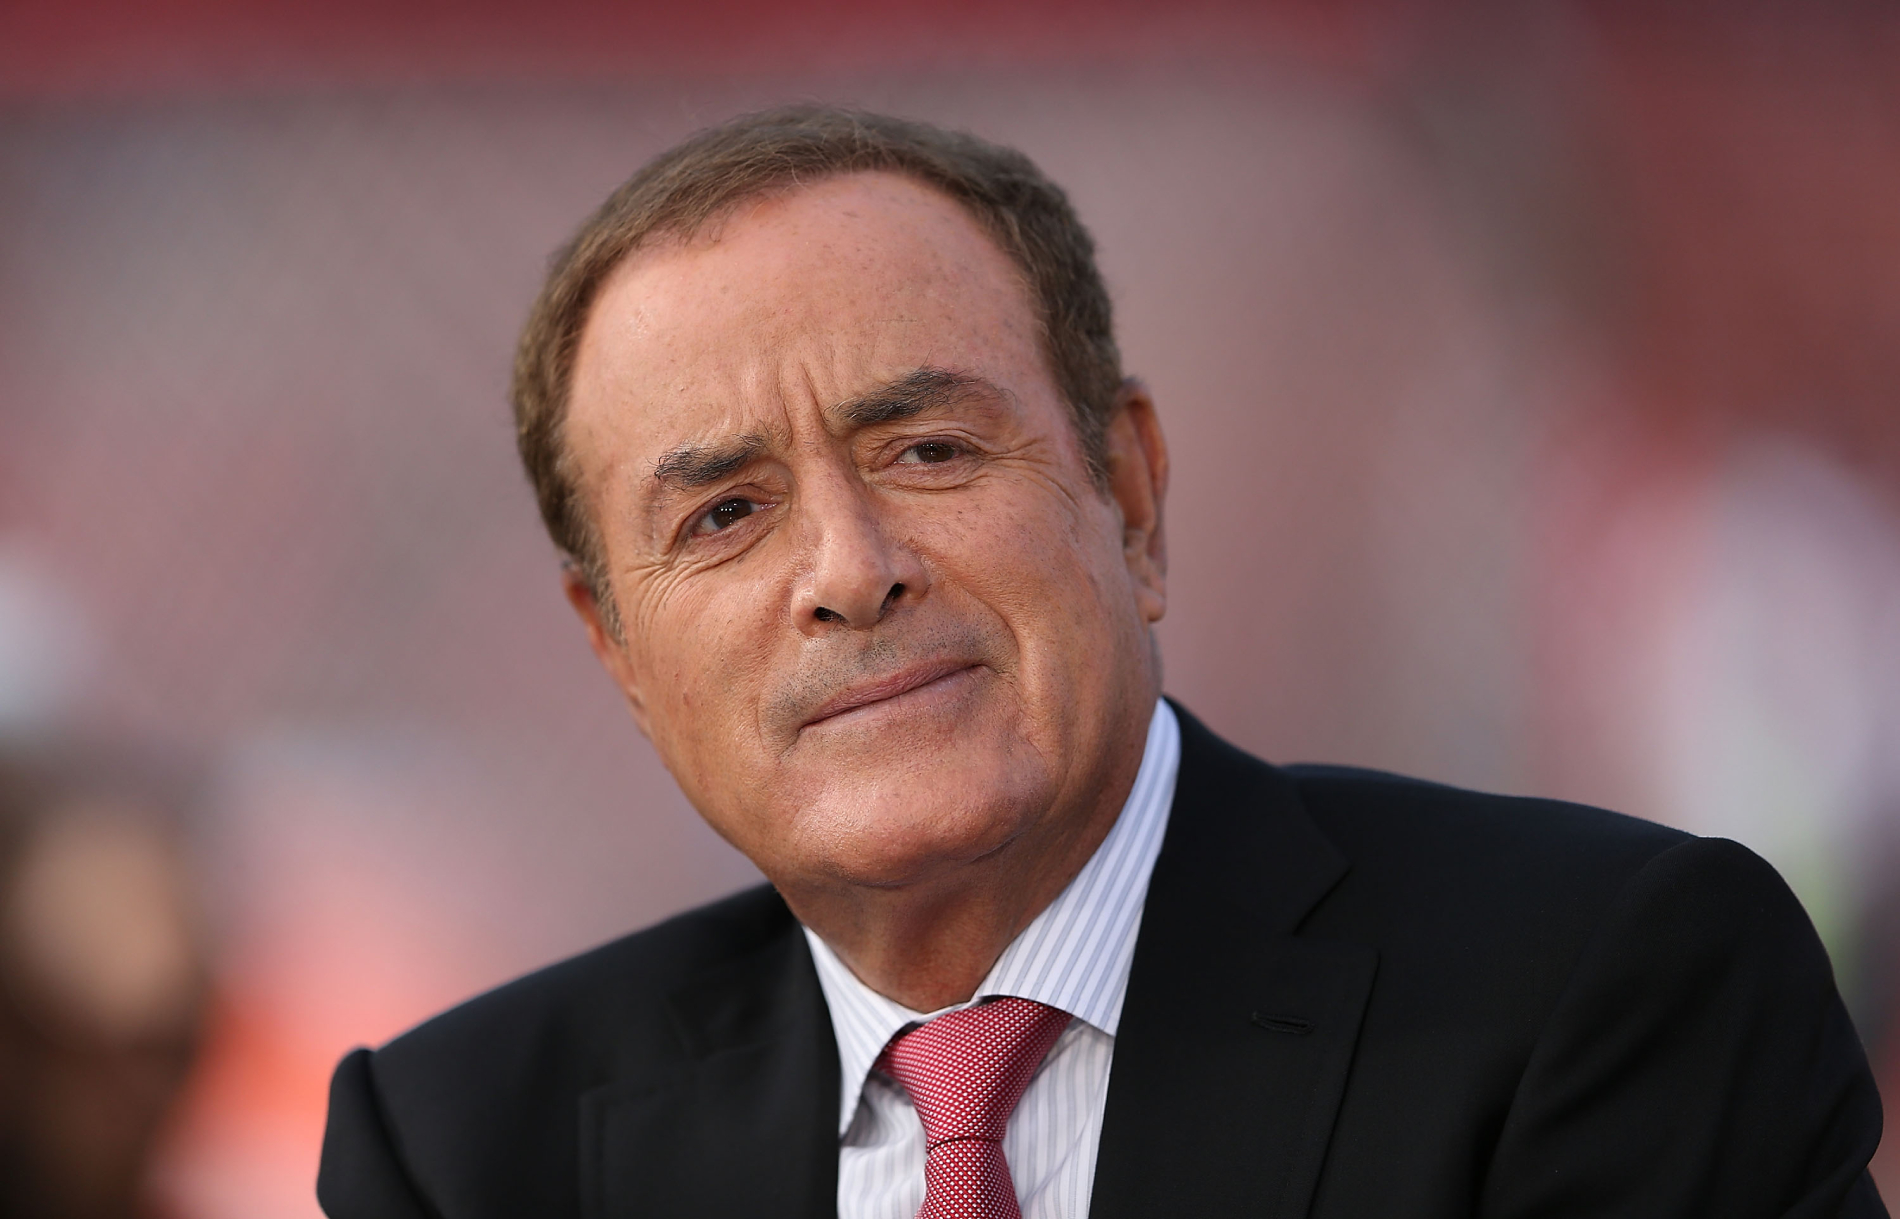 Al Michaels has covered many big sporting events. However, one year at the Super Bowl he had to be ready for terrorists to invade his booth.